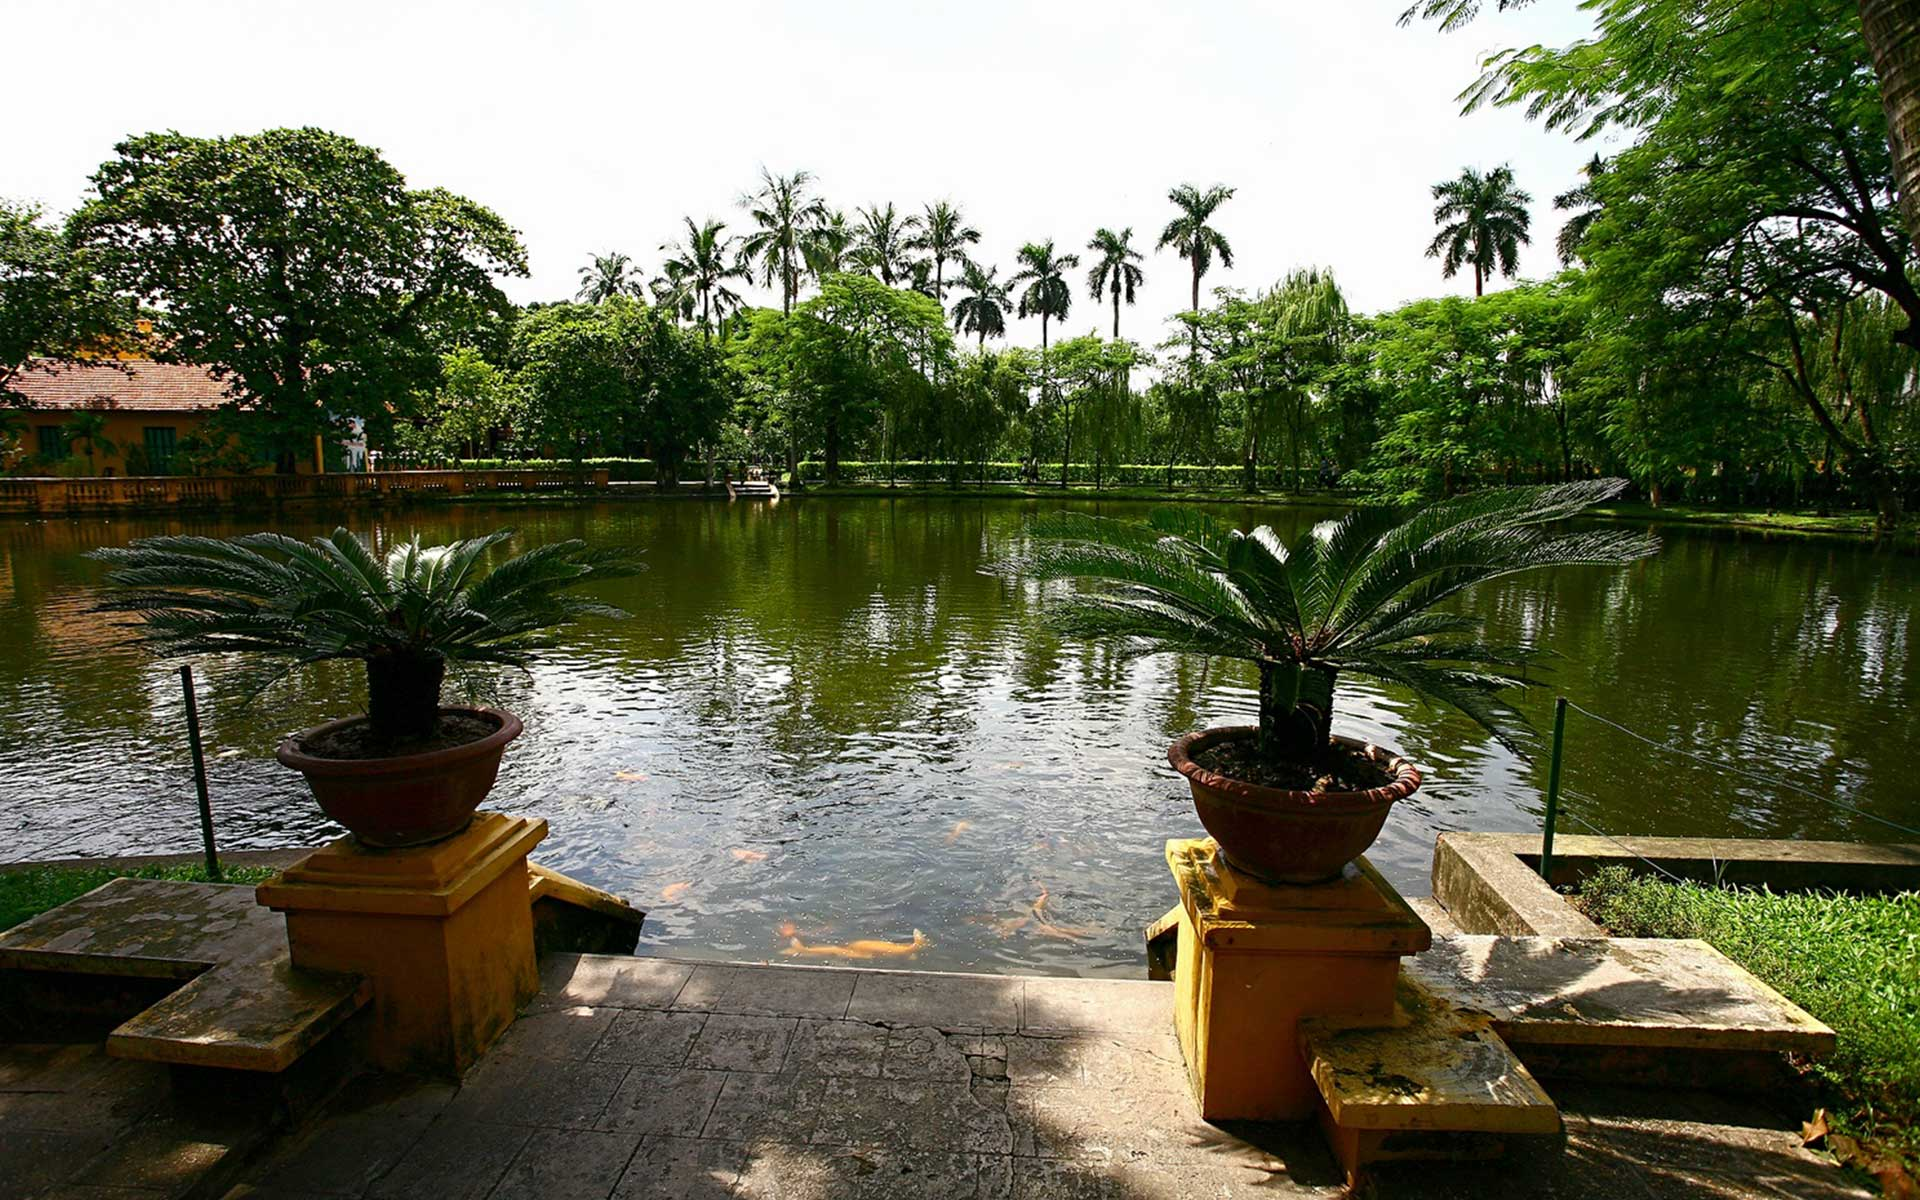 carp pond of ho chi minh Stilt House